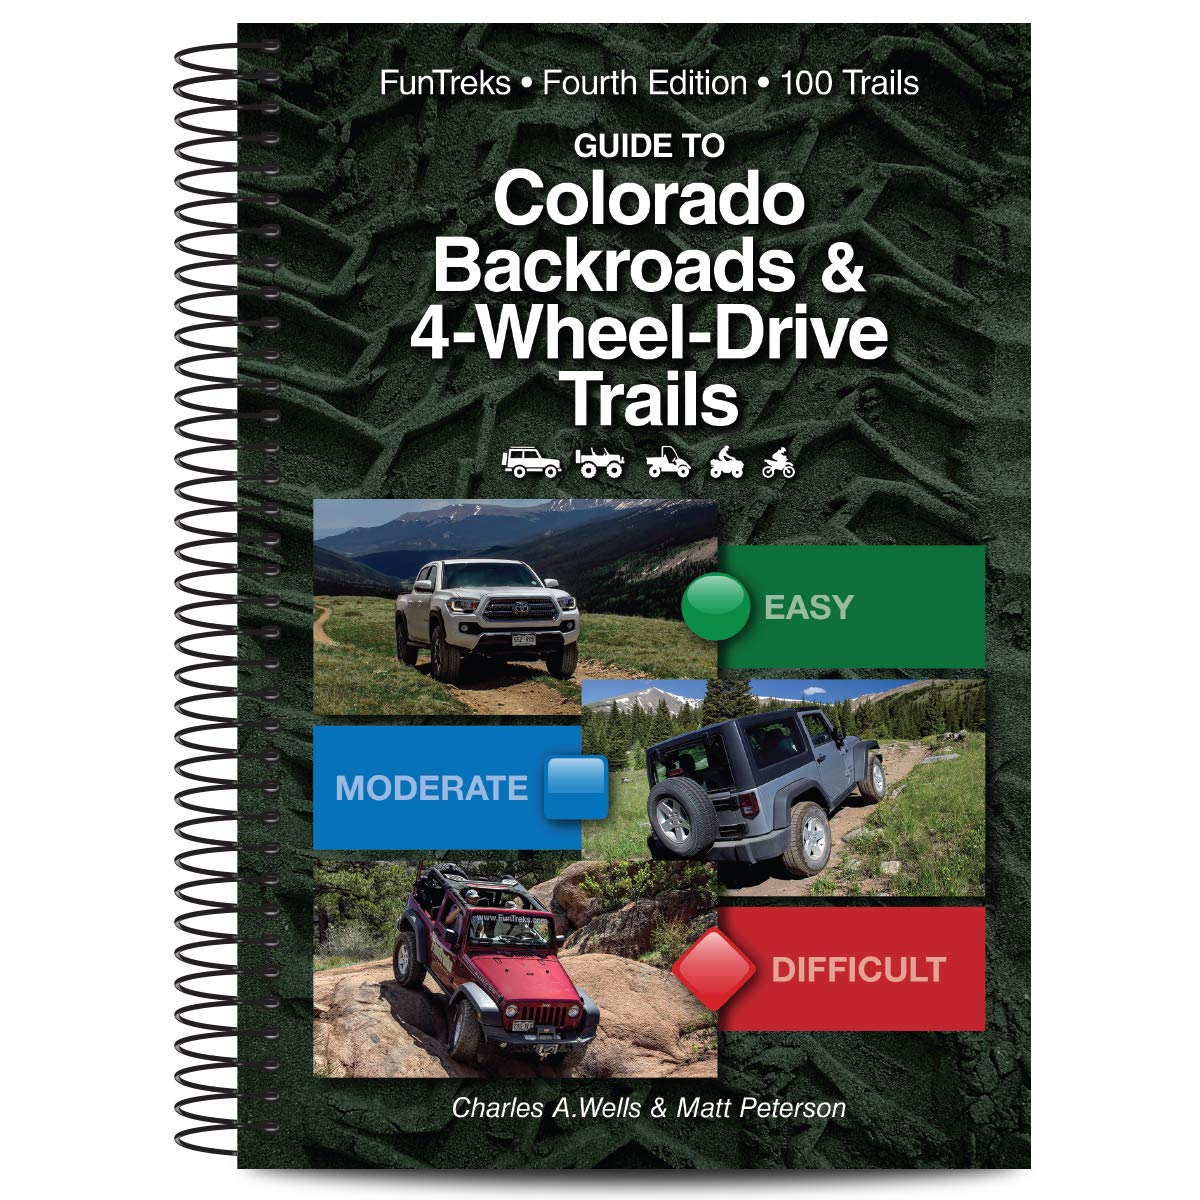 Guide to Colorado Backroads & 4-Wheel-Drive Trails, 4th Edition by Funtreks Inc